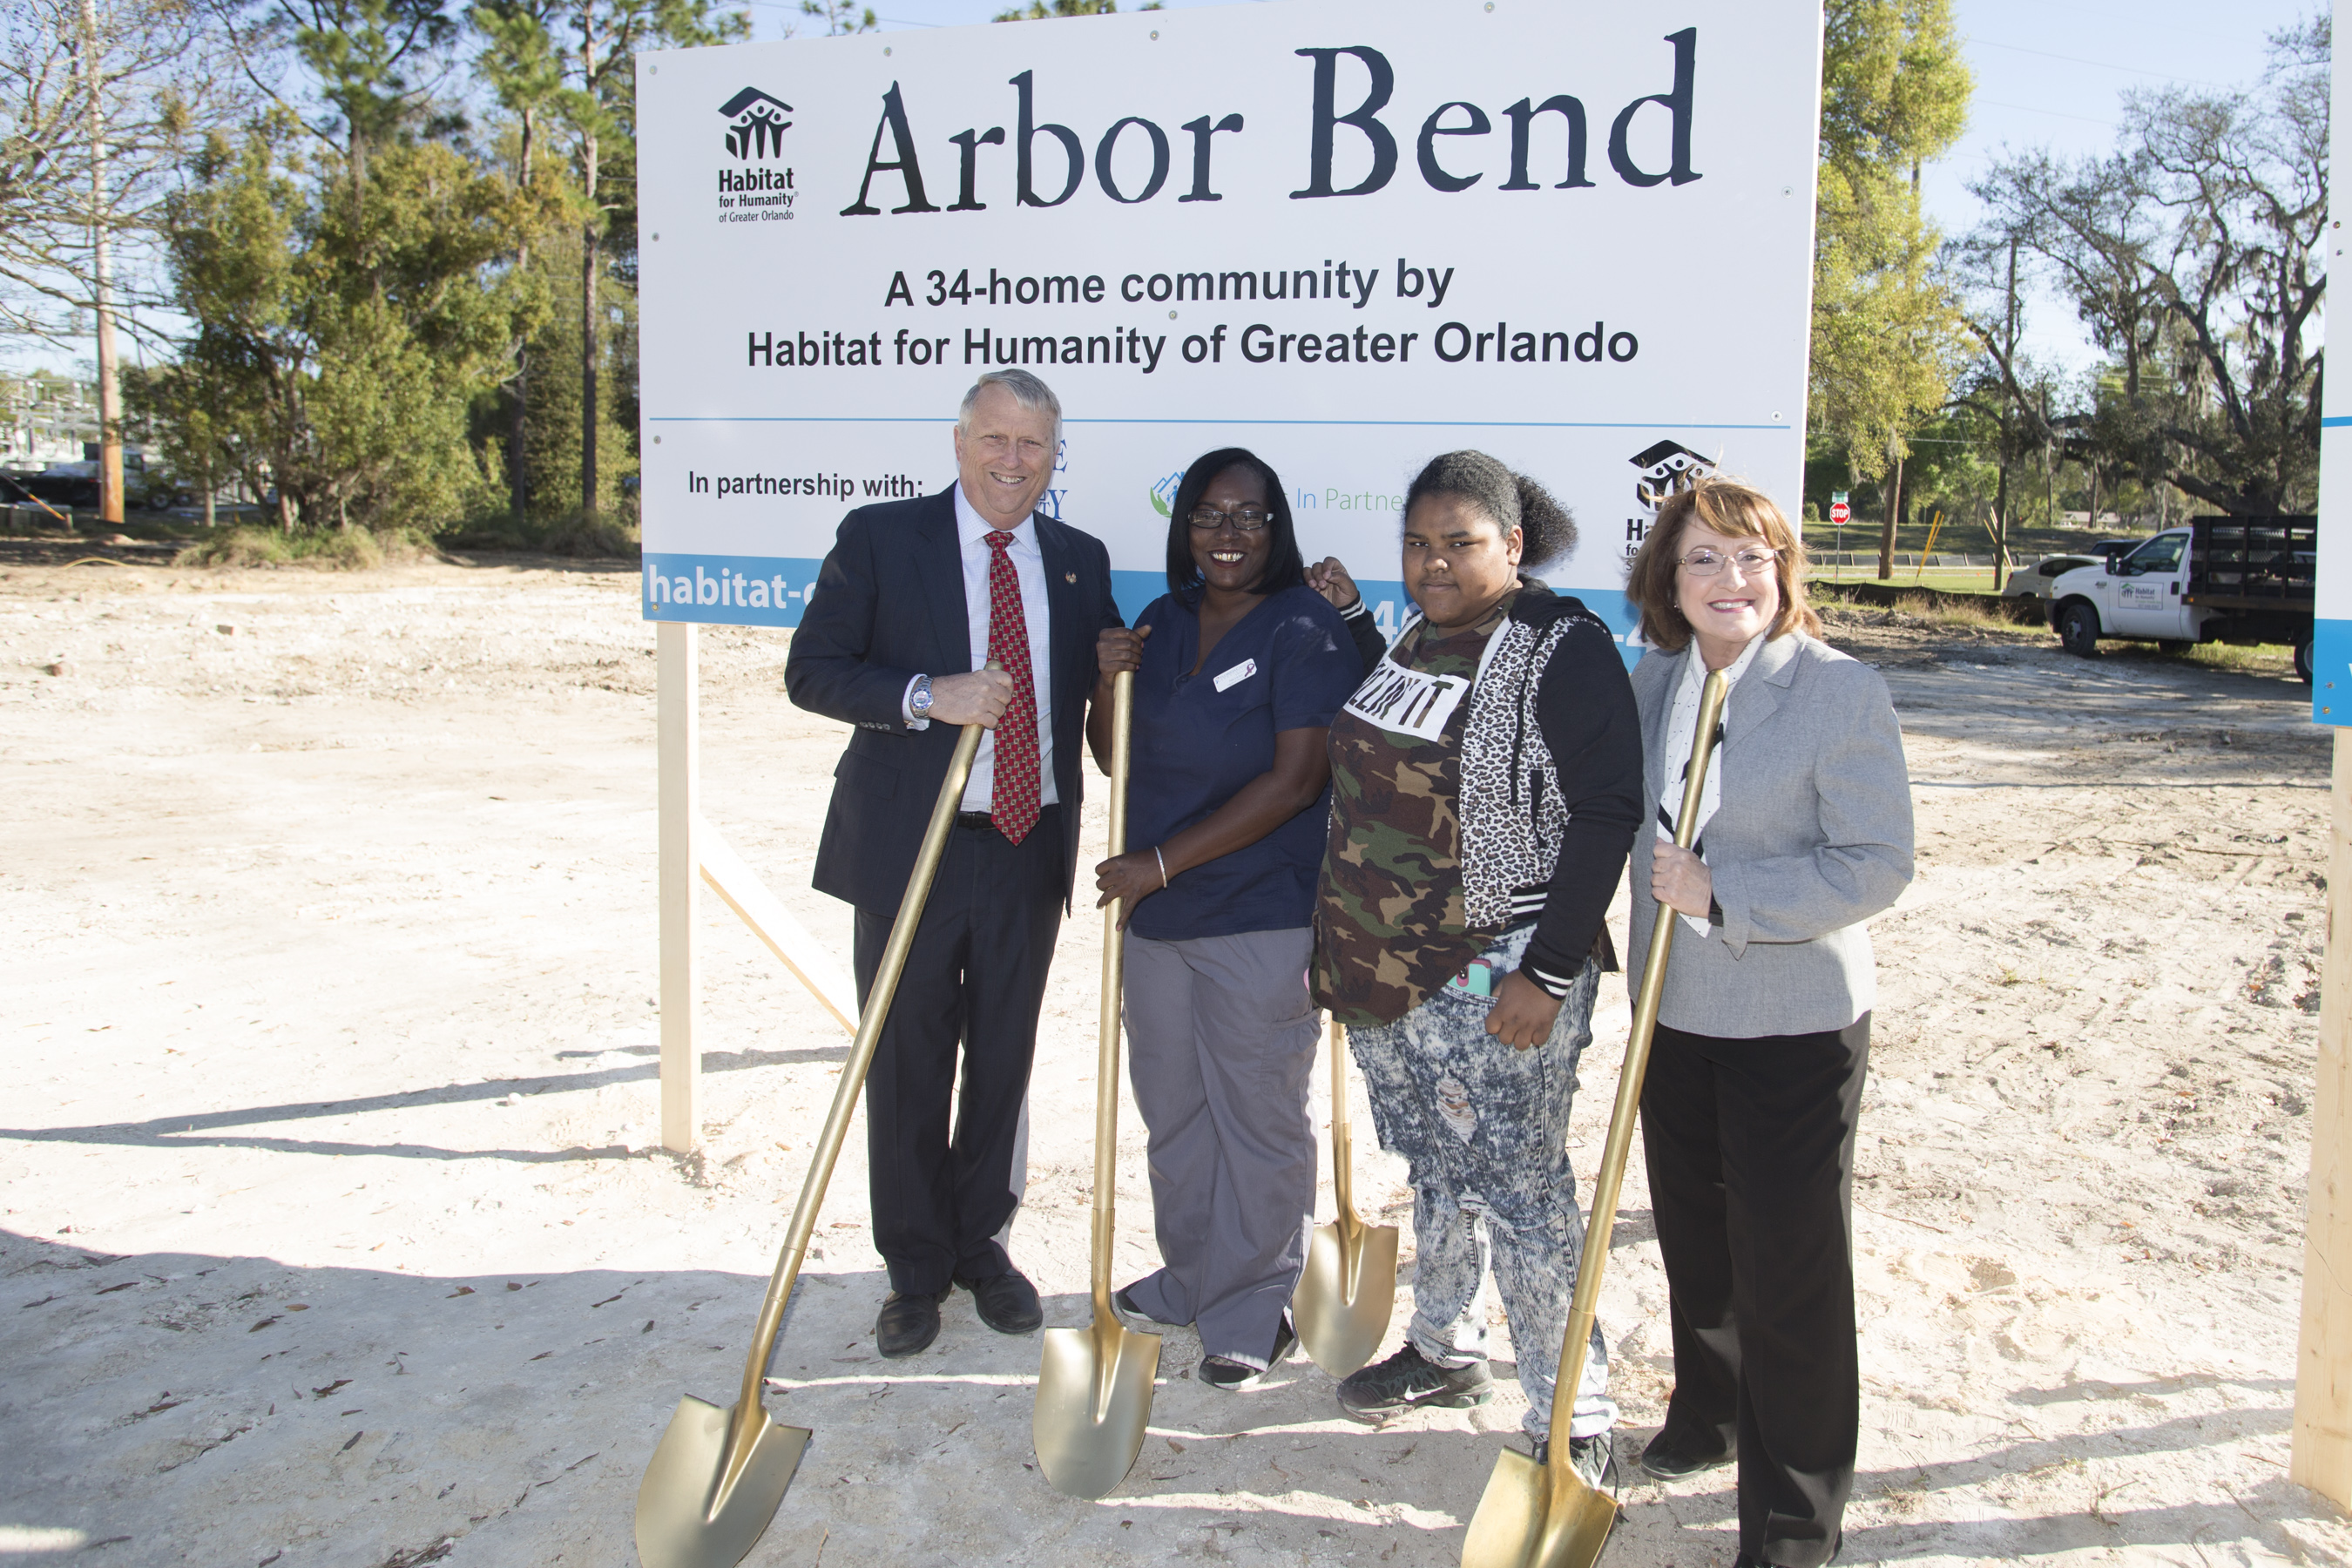 Mayor Jacobs, Commissioner Nelson and two individuals at the Arbor Bend groundbreaking